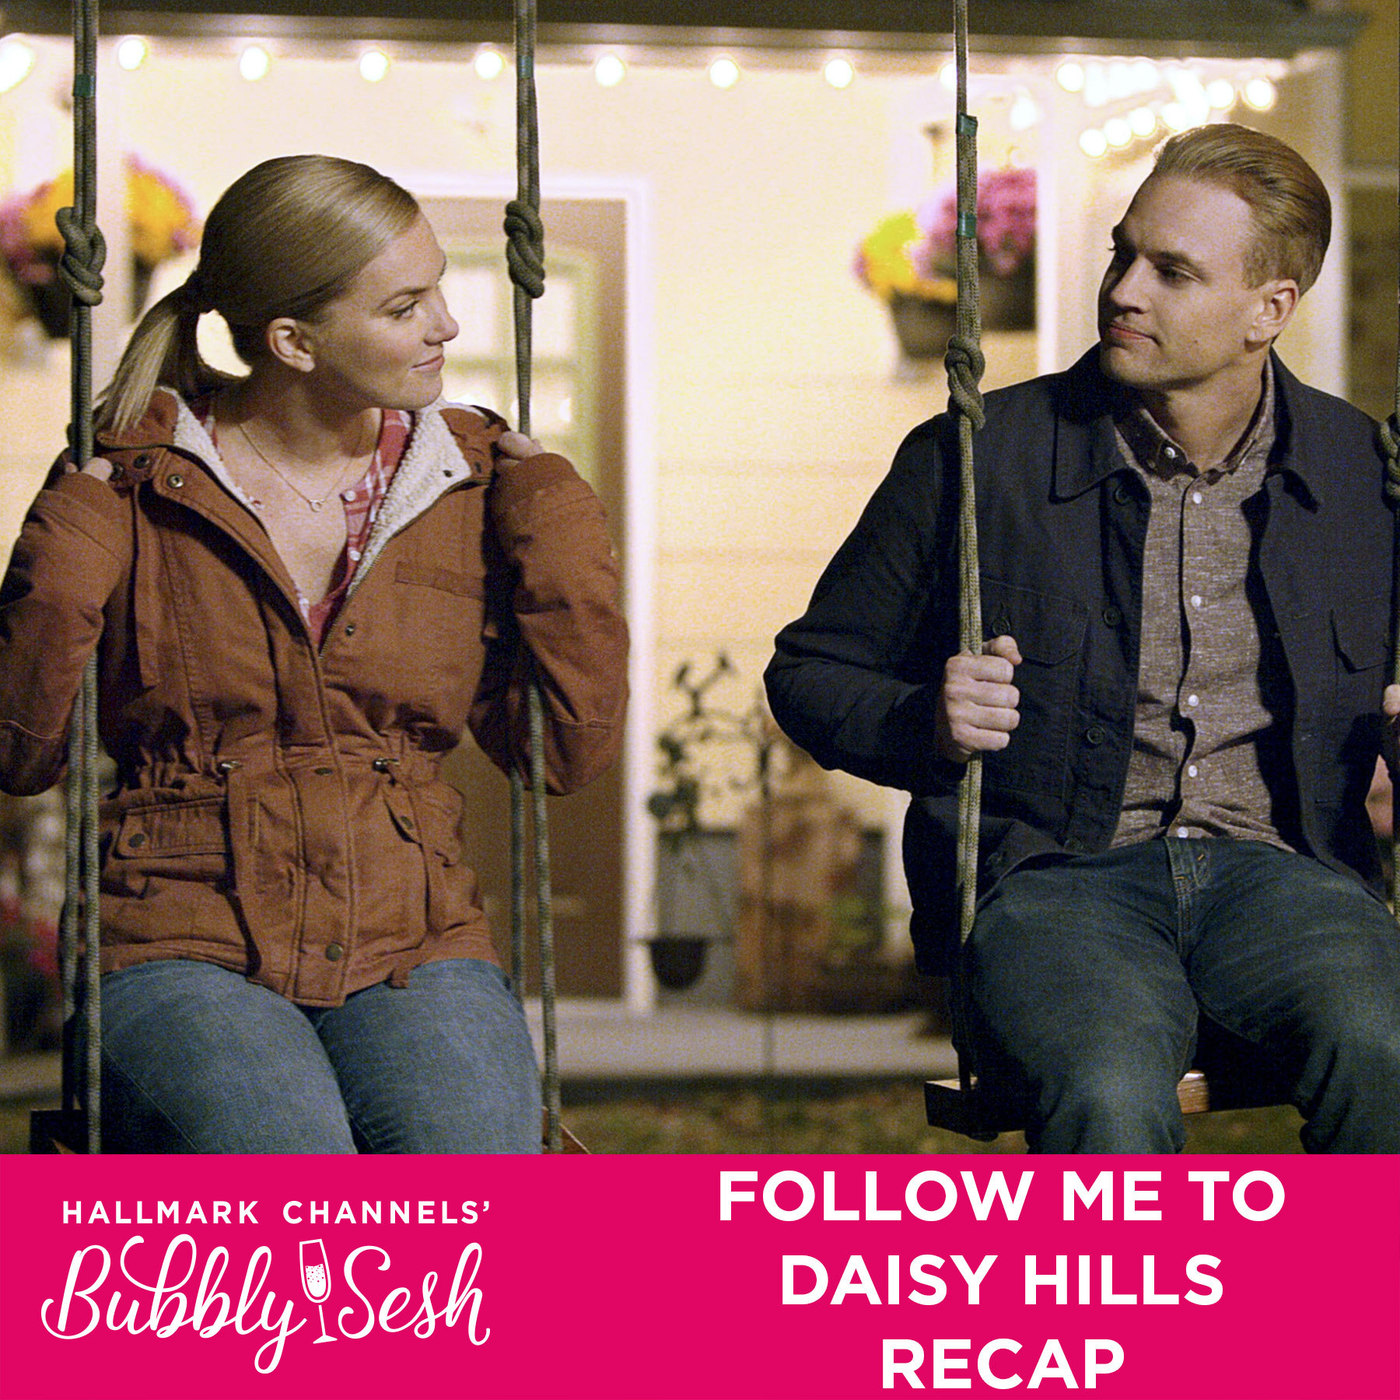 Follow Me to Daisy Hills Recap